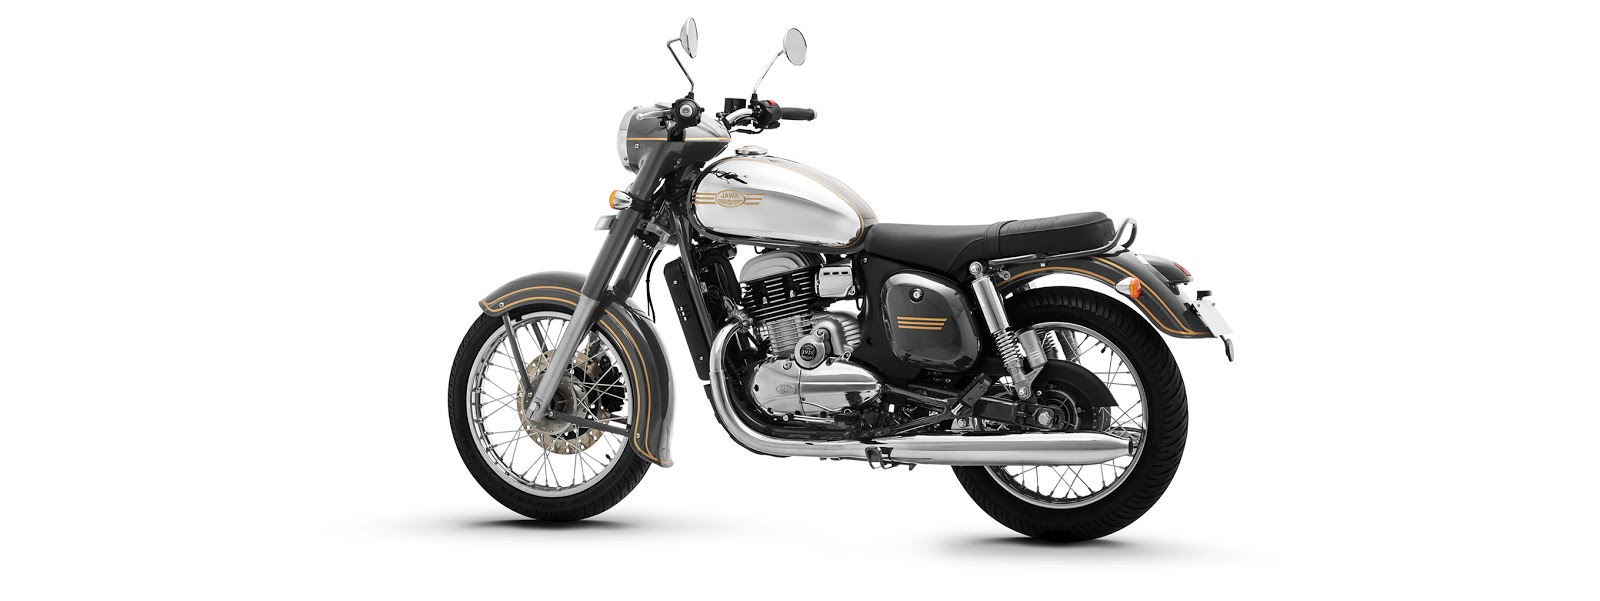 Jawa motorcycle is available in three colors,Jawa Grey